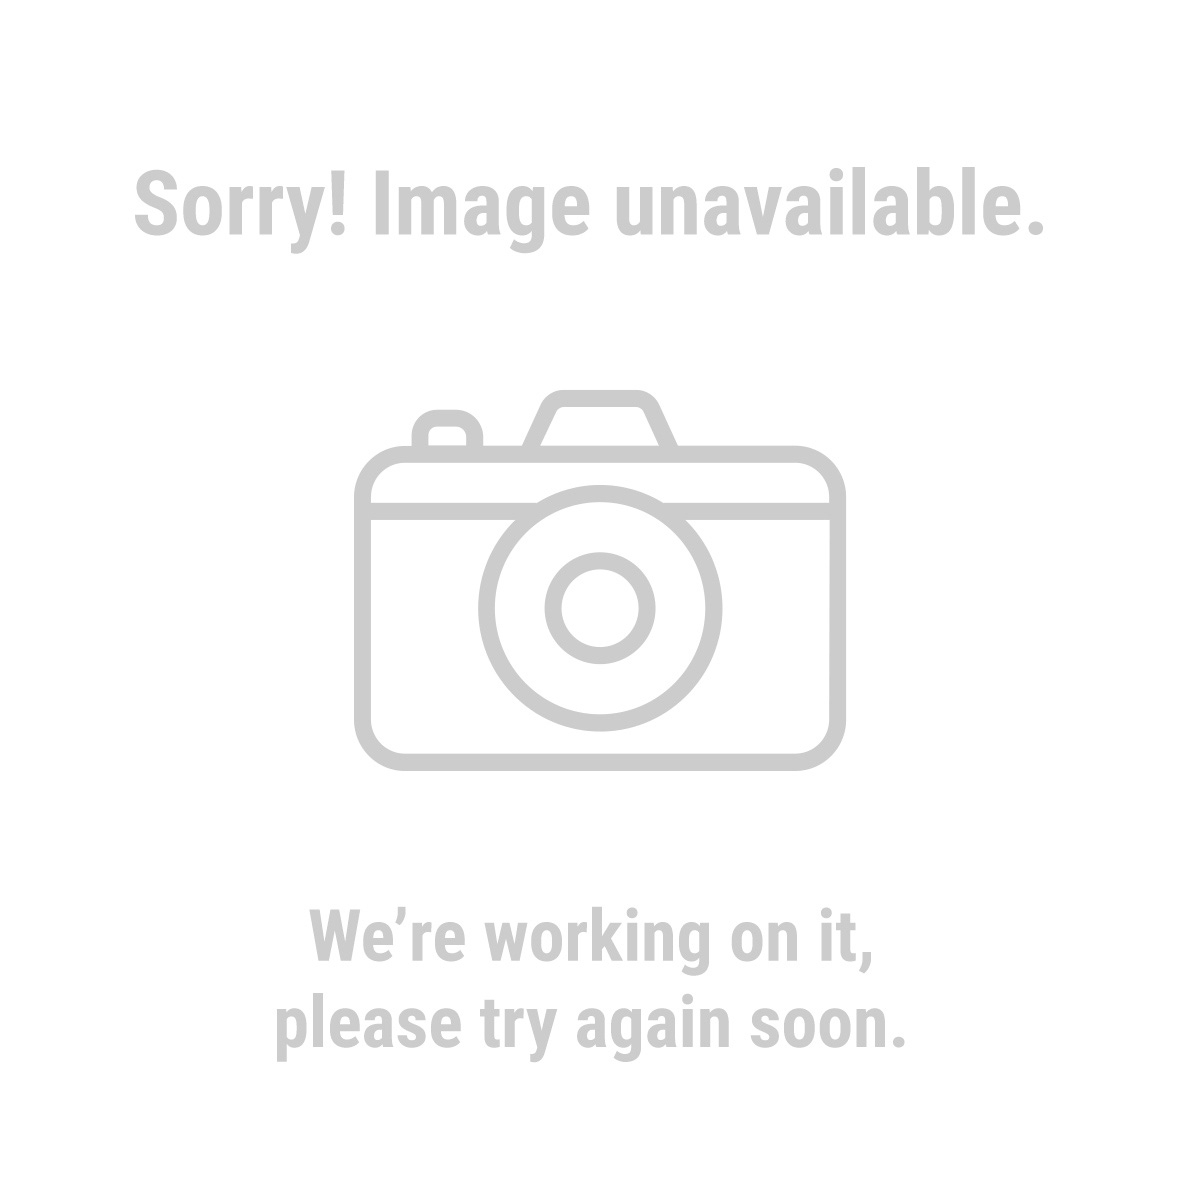 Haul-Master® 61175 2 in. x 20 ft. Heavy Duty Recovery Strap